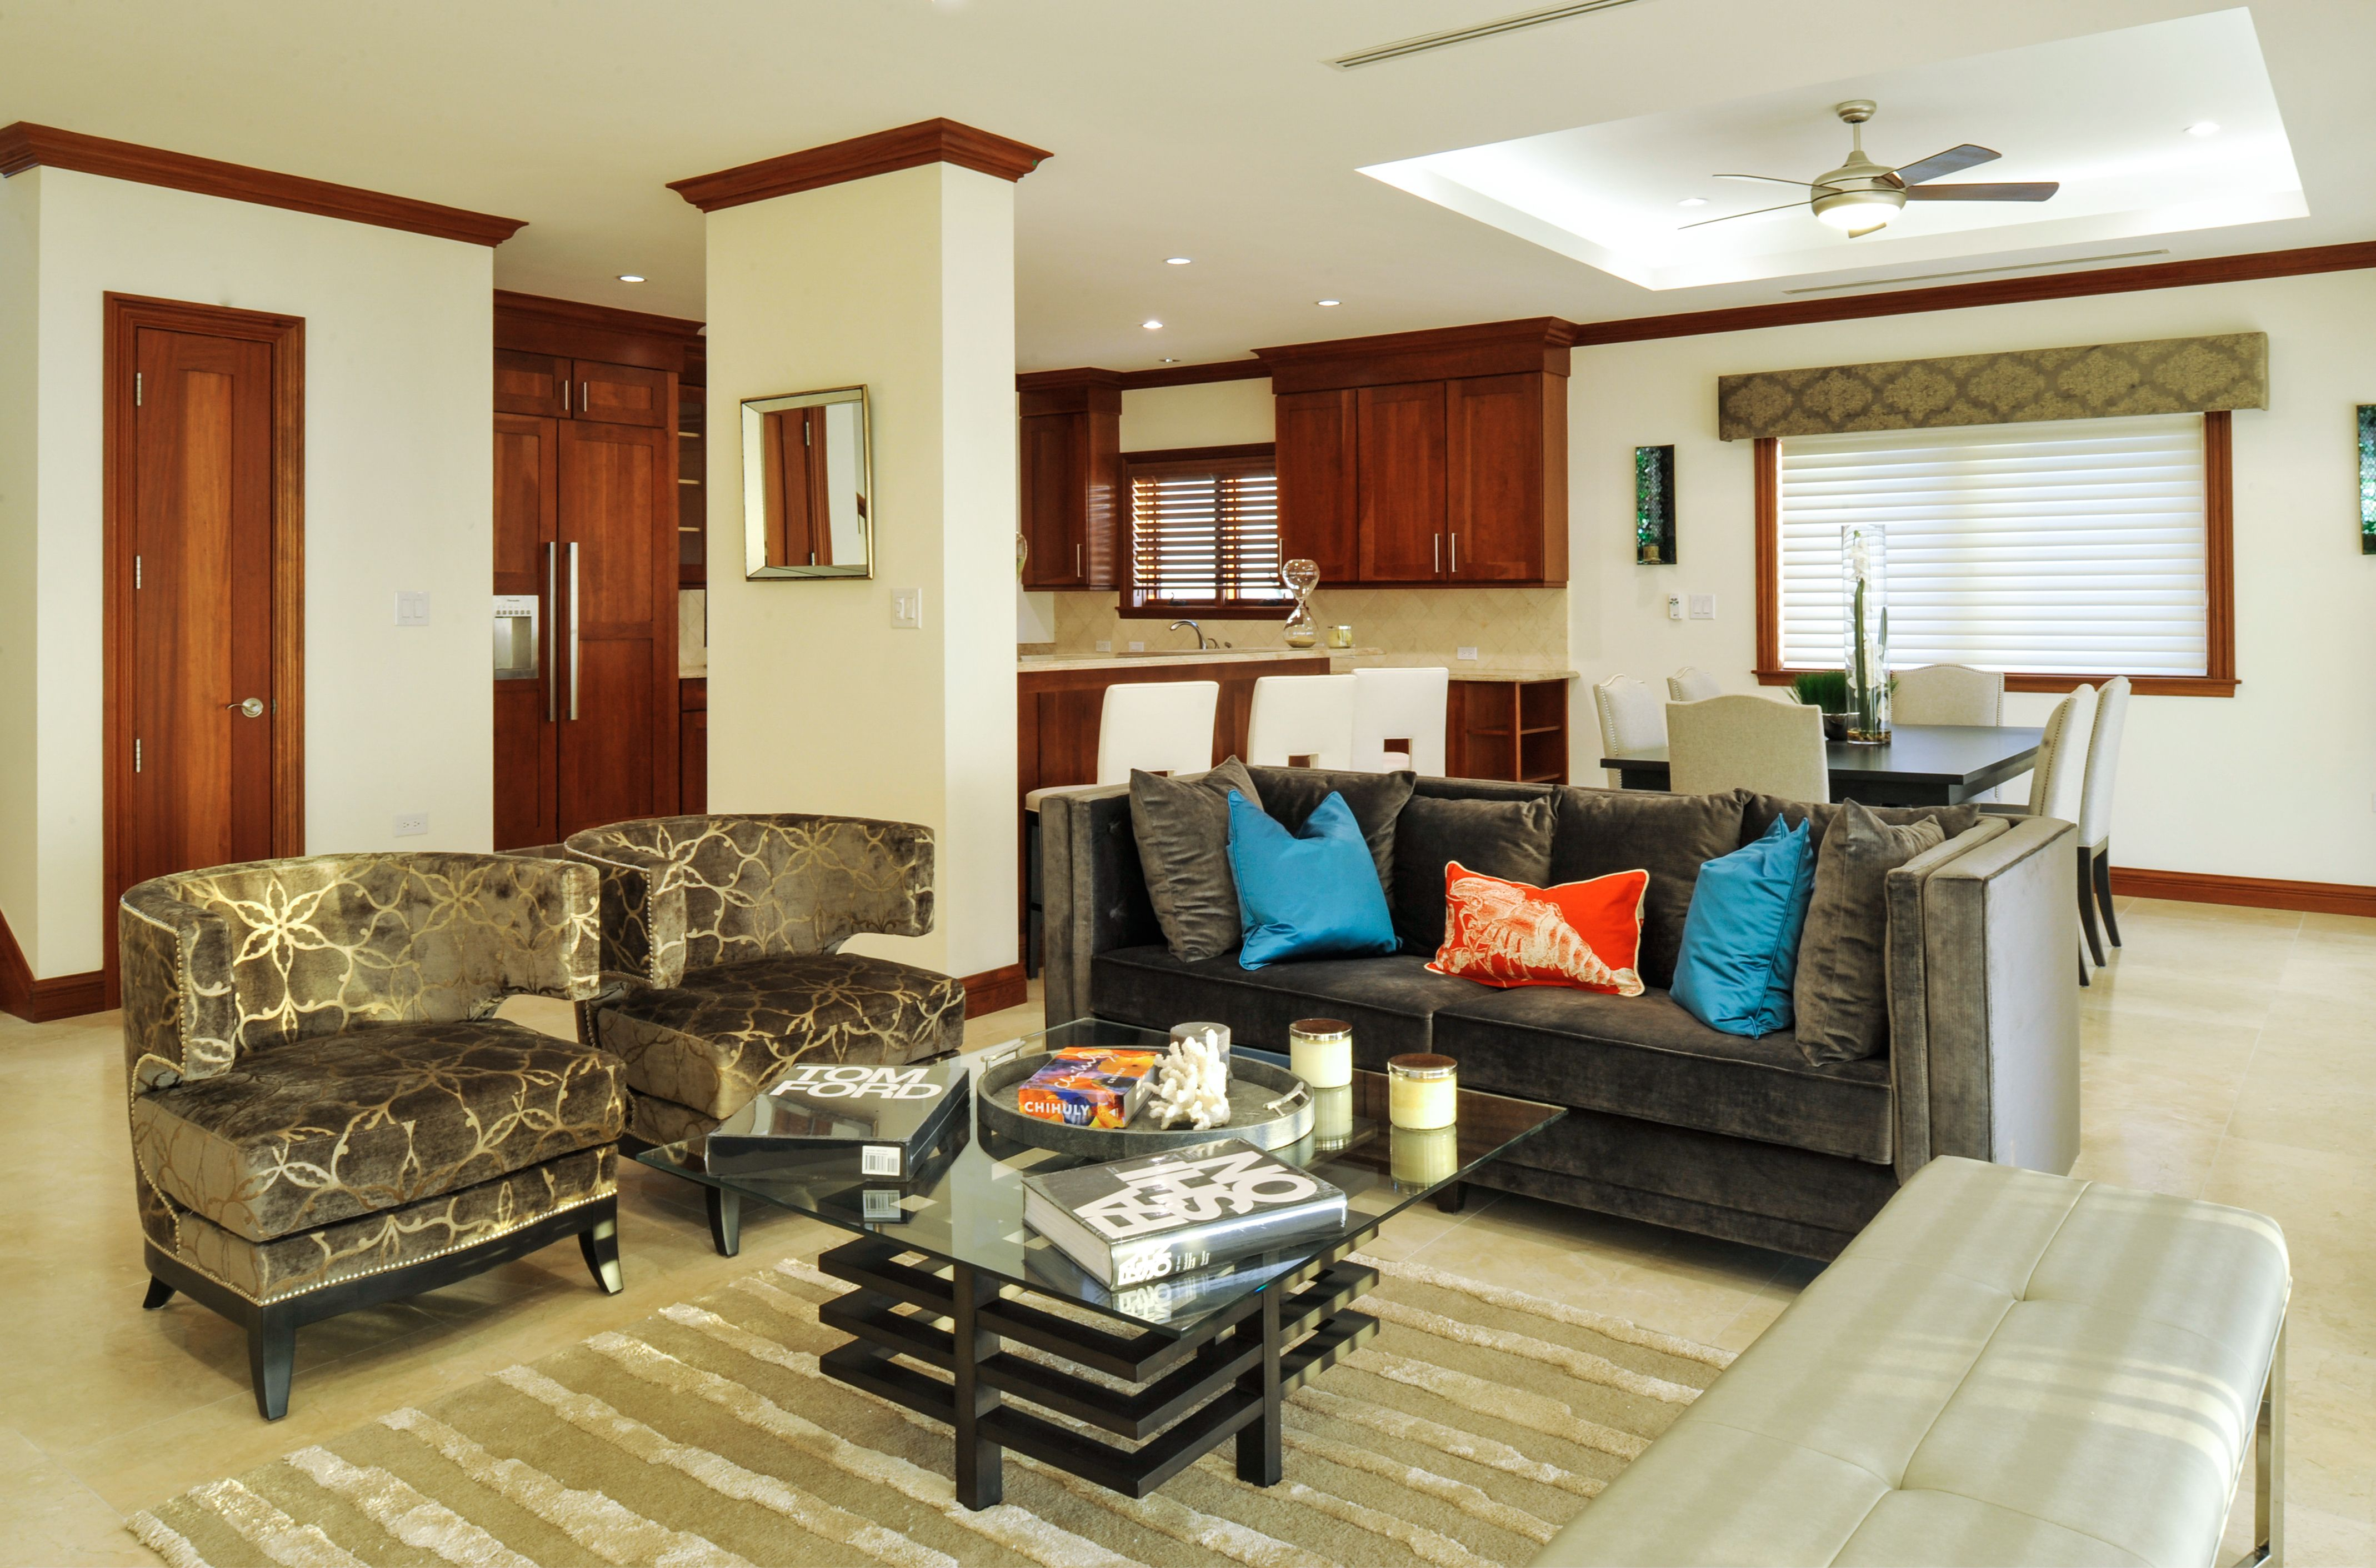 A Shot Of The Family Room From Casa Luna Project Interior Design Cayman Islands